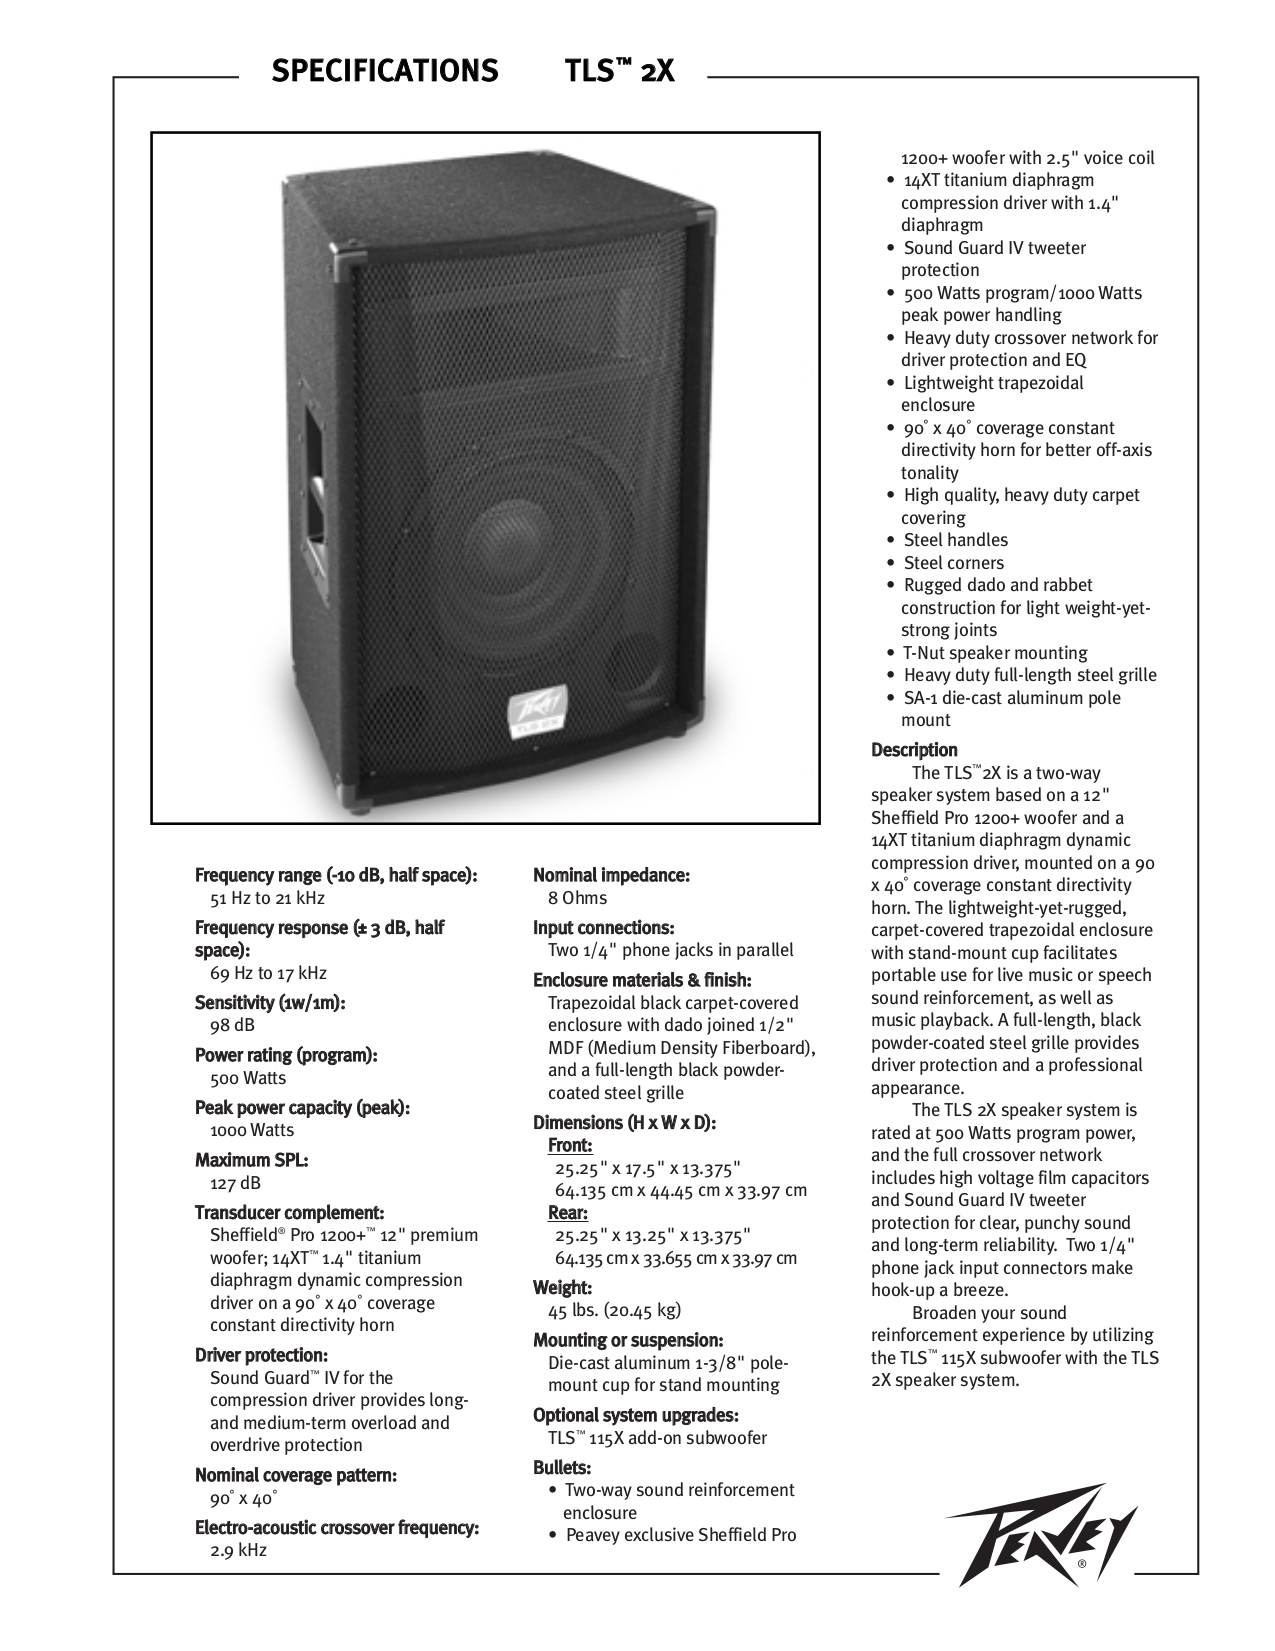 download free pdf for peavey sheffieldpro 1200 speaker manual rh umlib com peavey pv215 speakers manual peavey sp4g speaker manual